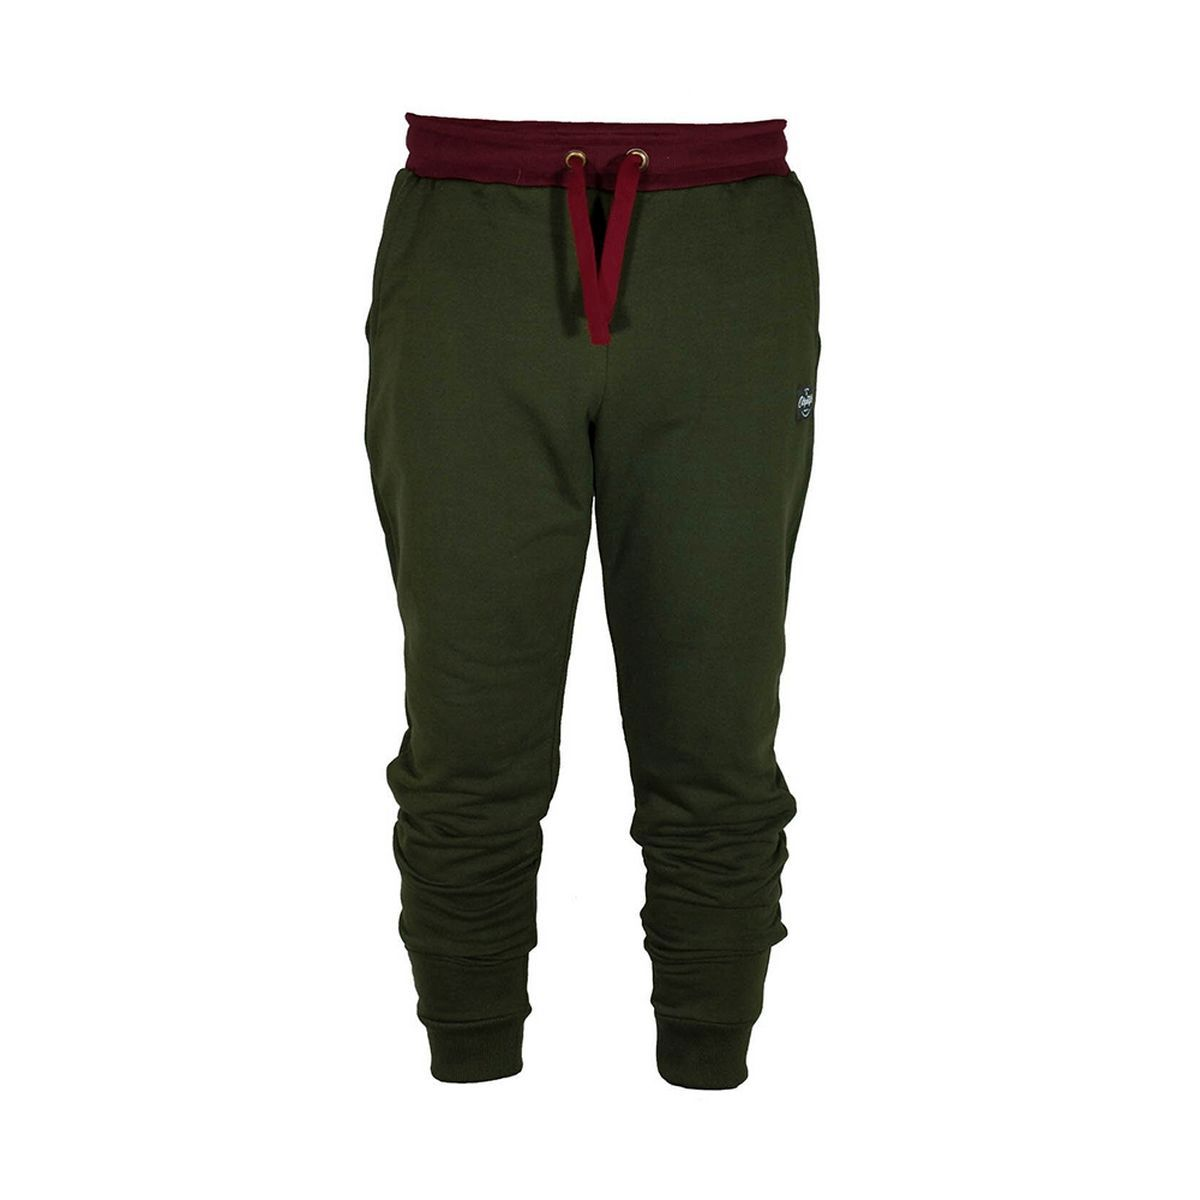 CARPSTYLE GREEN FOREST JOGGERS - XL